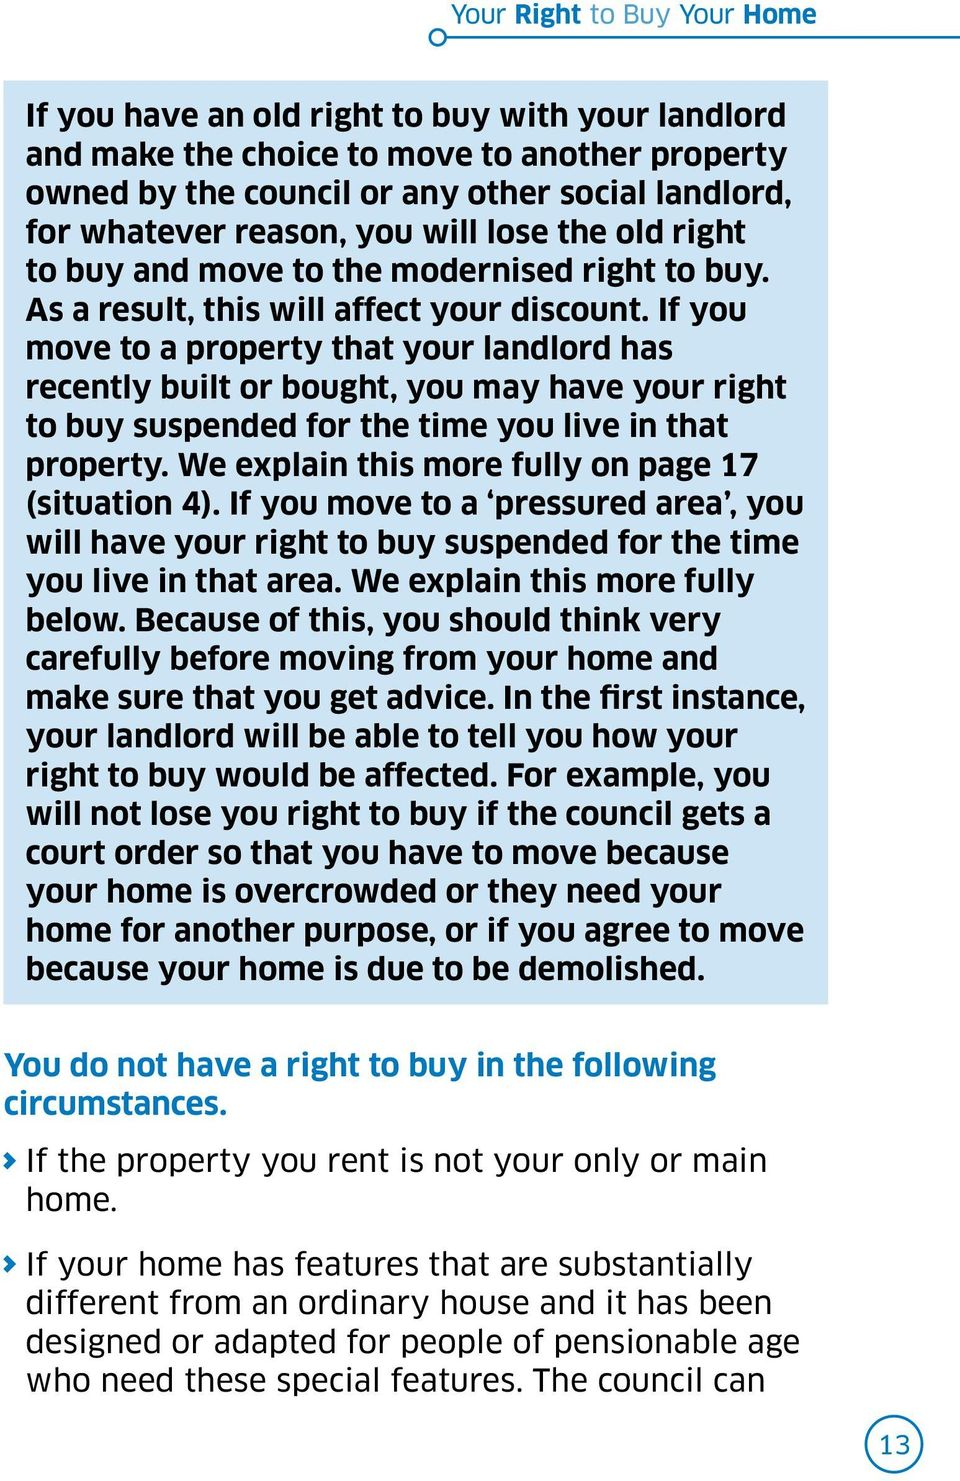 If you move to a property that your landlord has recently built or bought, you may have your right to buy suspended for the time you live in that property.